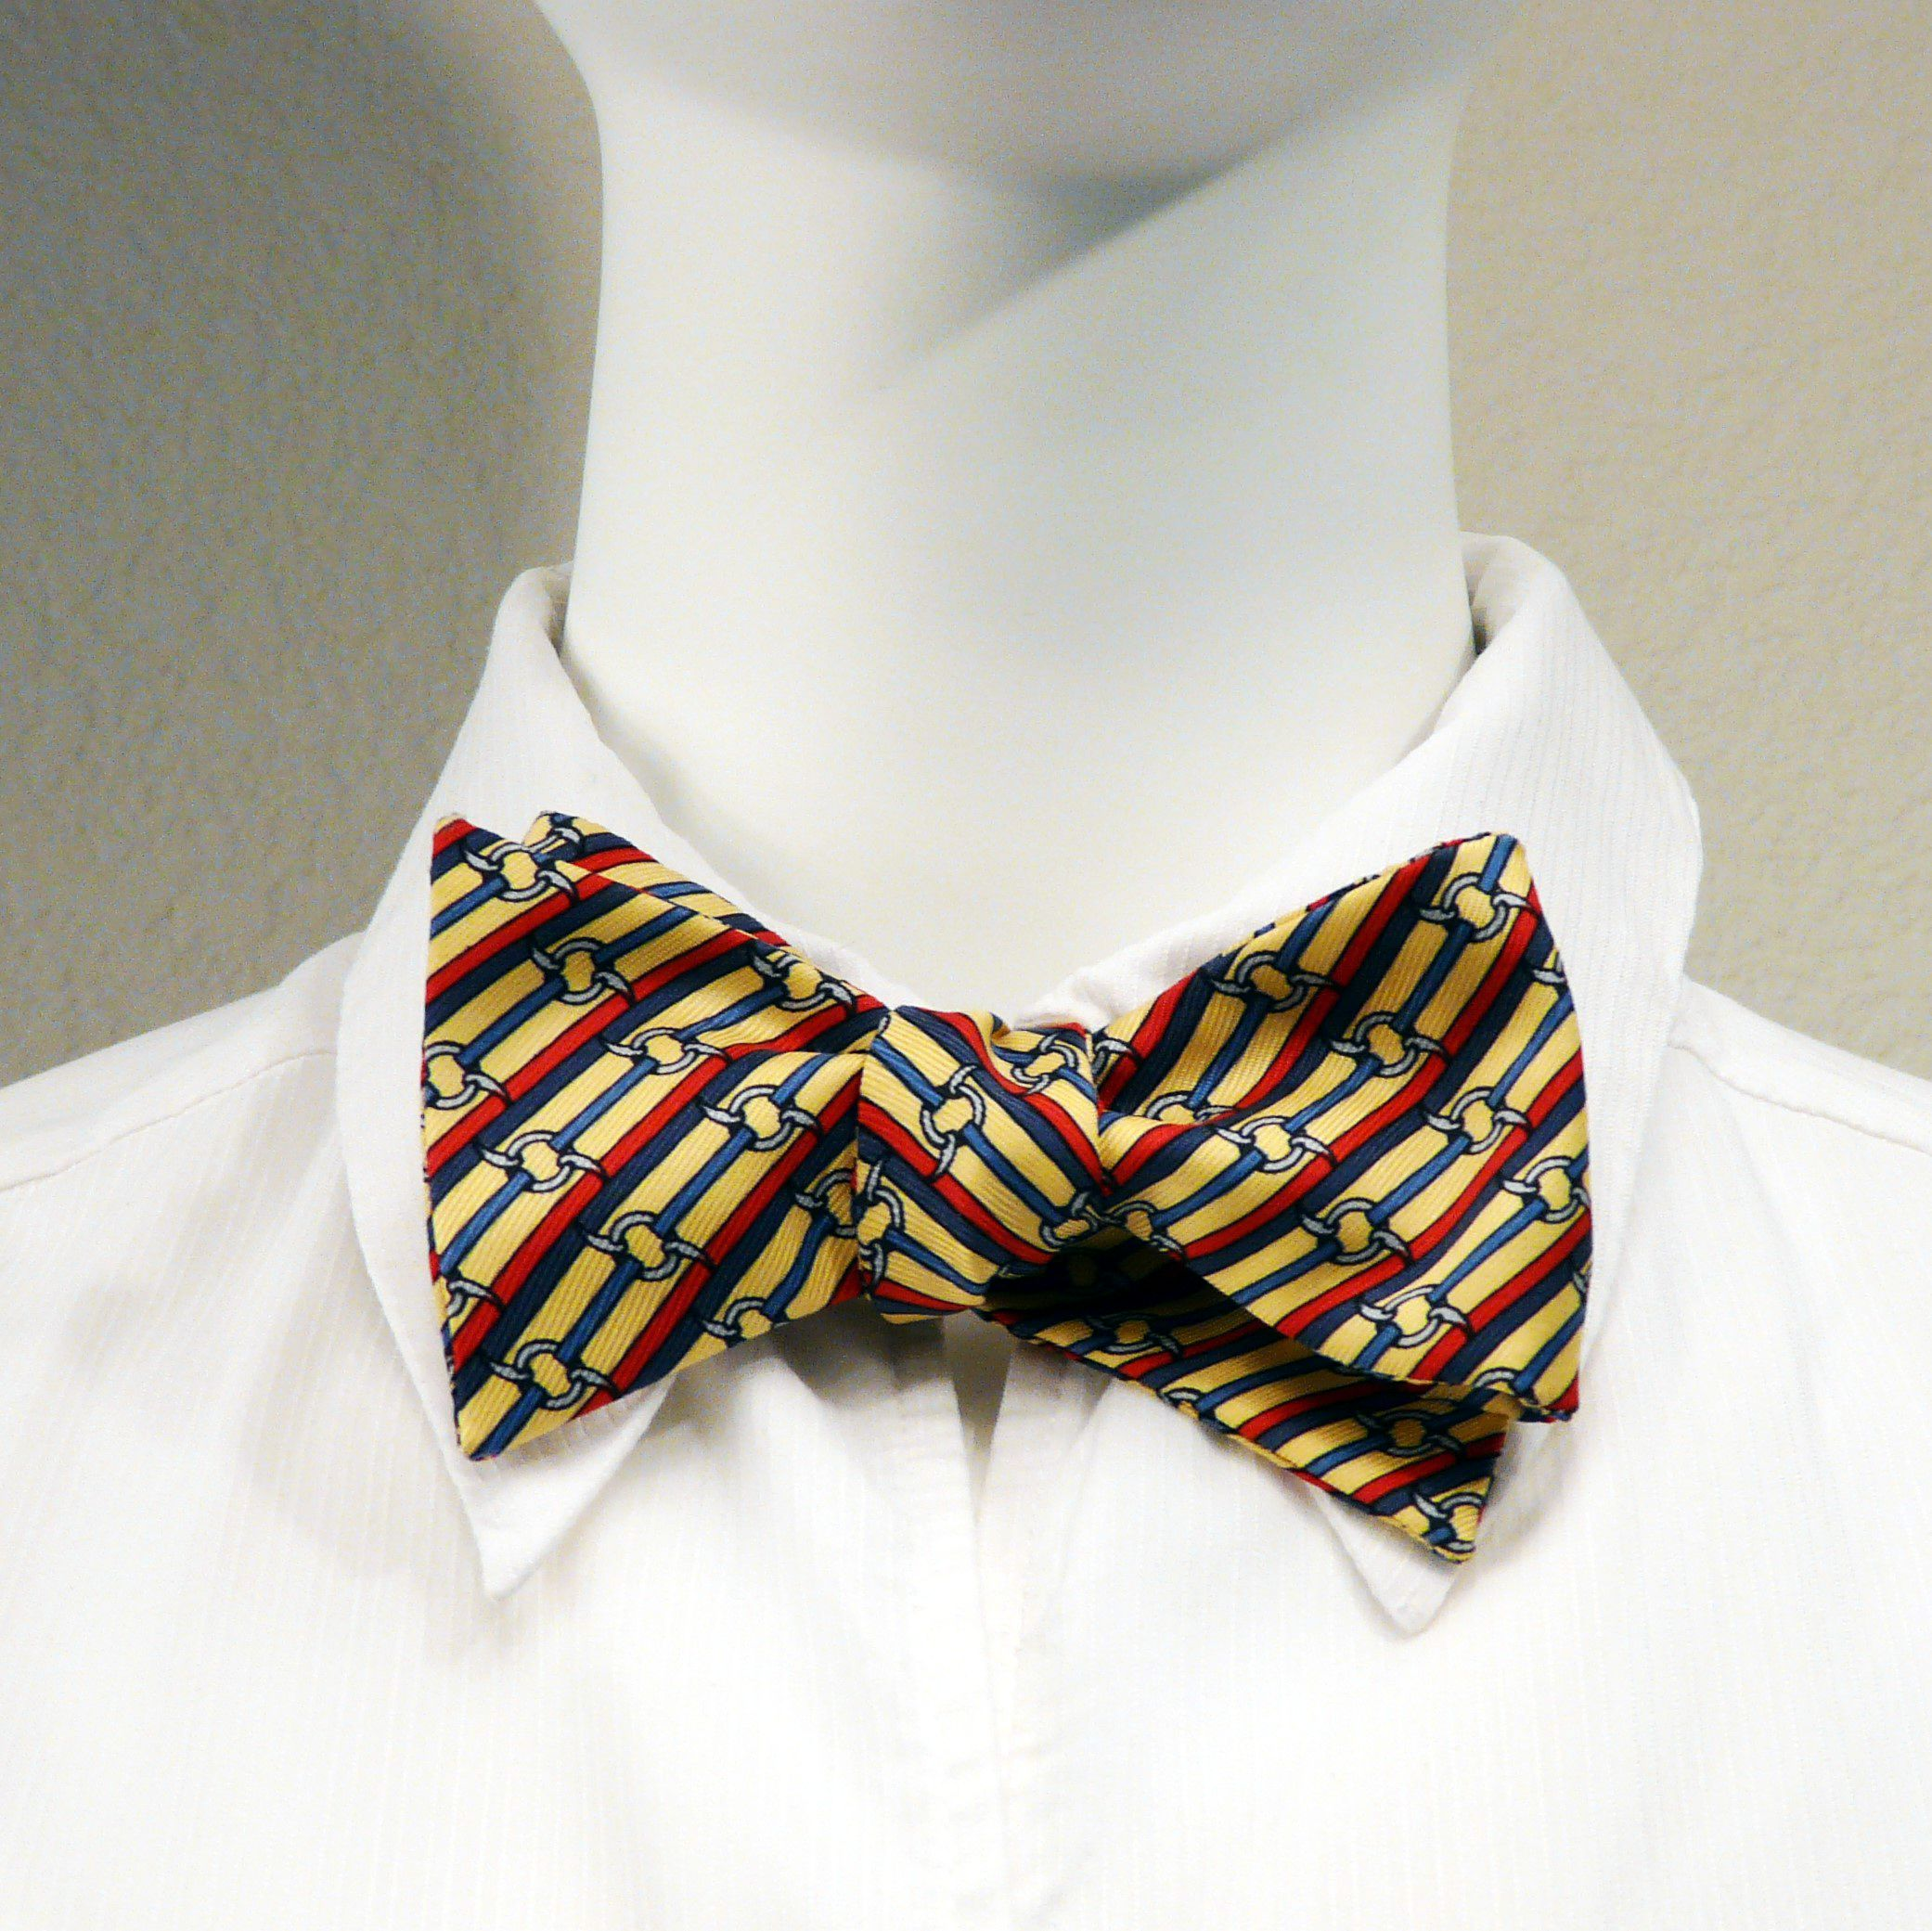 Hermes adjustable Vintage Bowtie